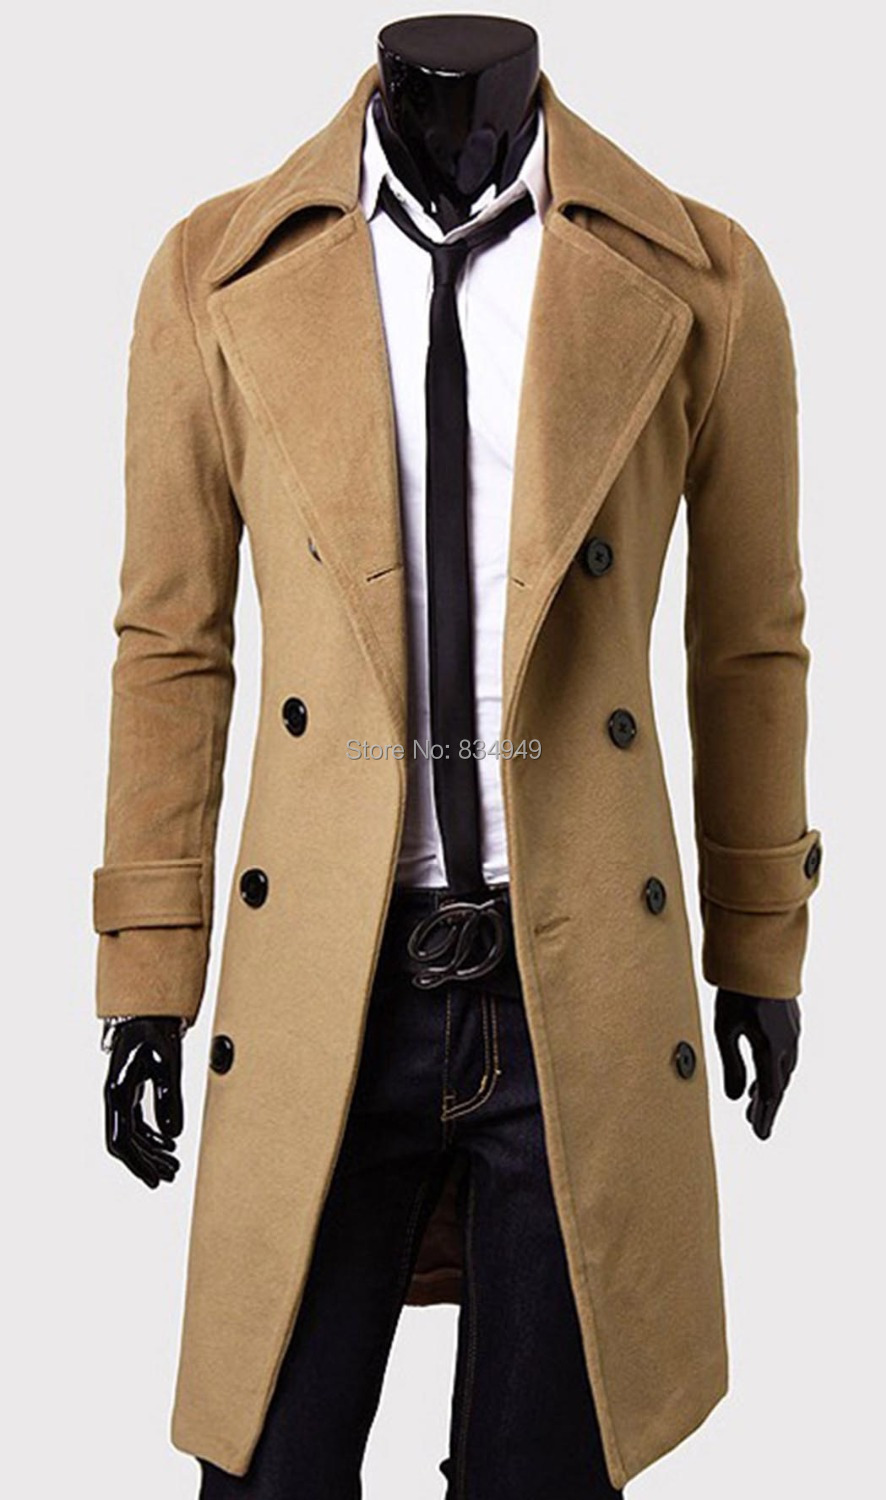 Compare Prices on Mens Winter Overcoat- Online Shopping/Buy Low ...